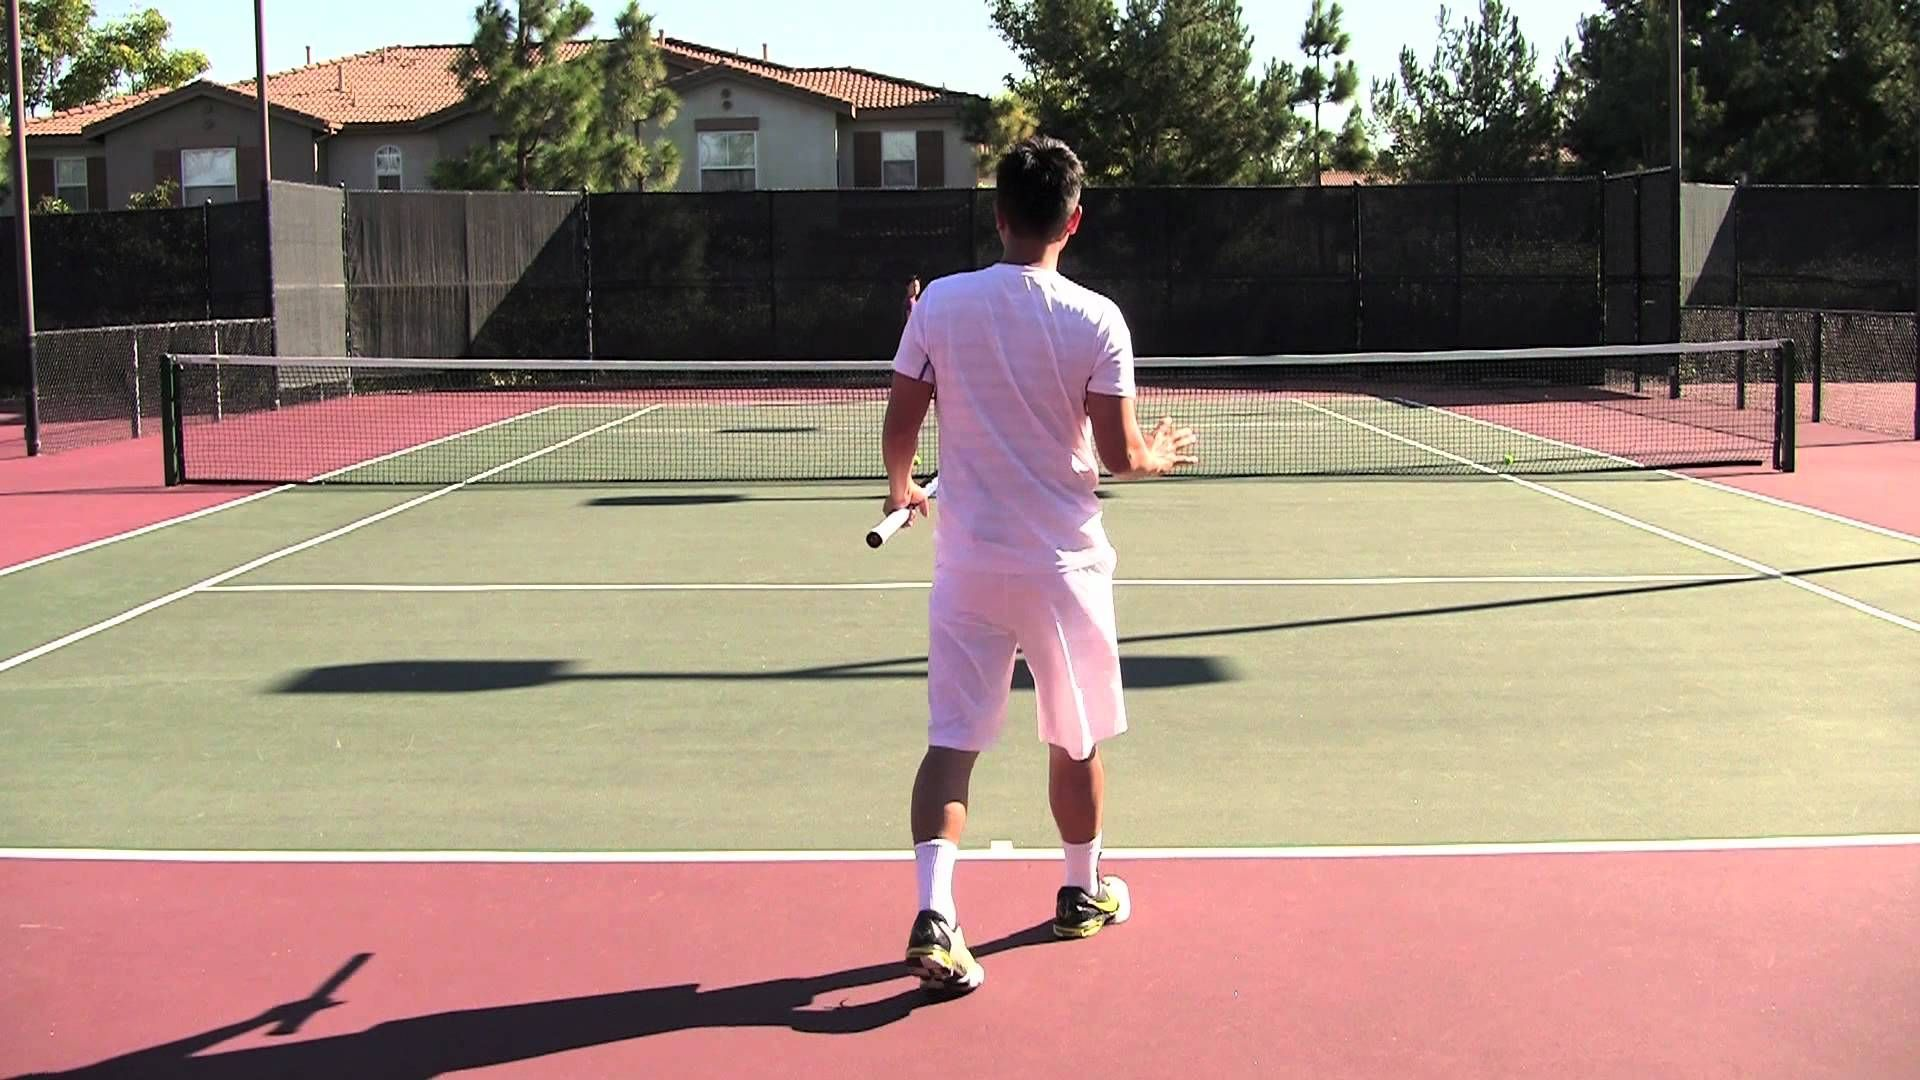 Tennis Lesson for Beginners Actual Game Part 3 of 5